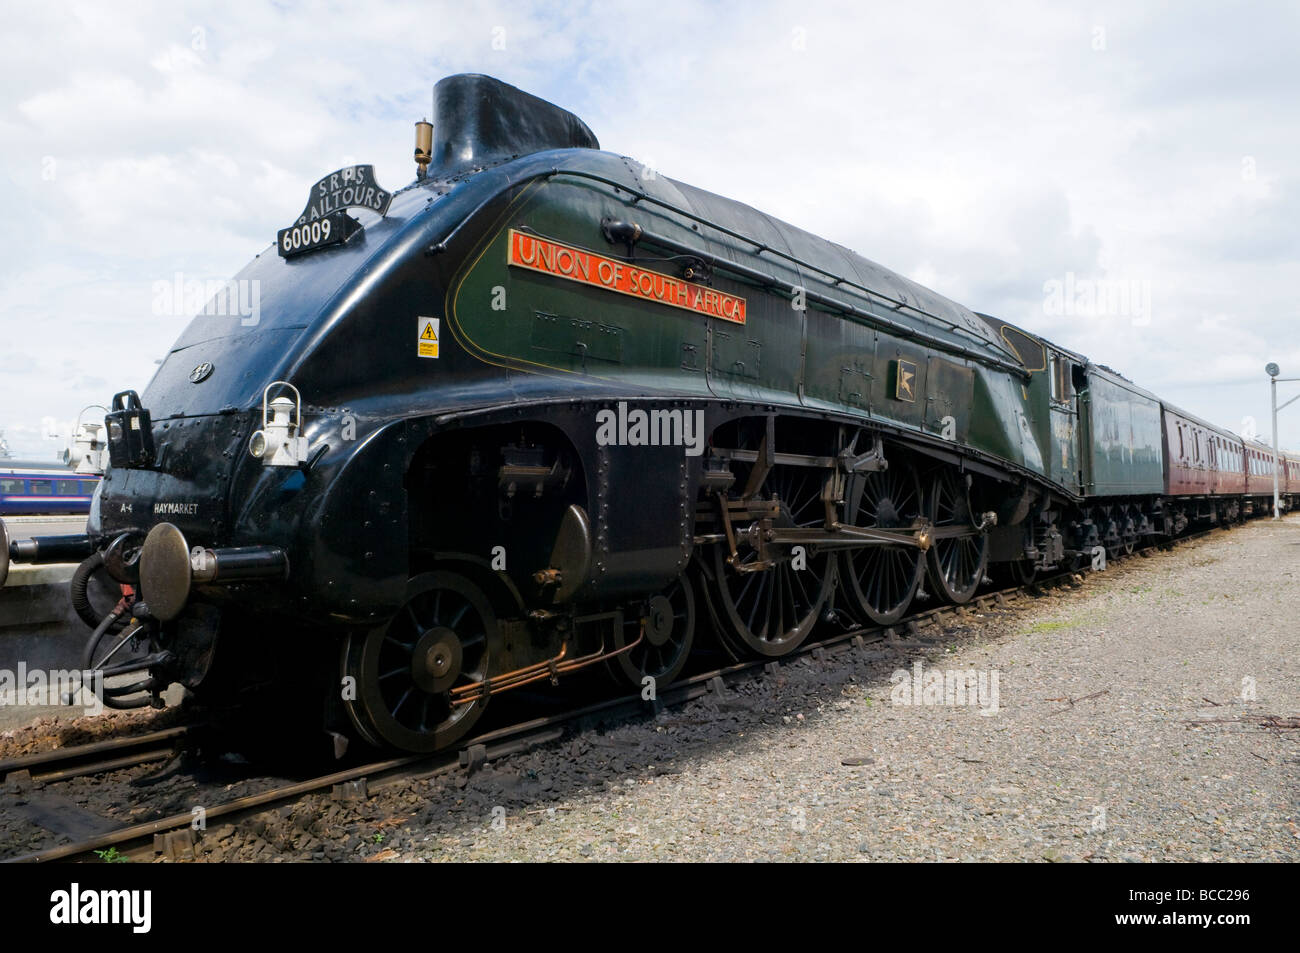 Union of South Africa 60009 A4 Pacific Class - Stock Image